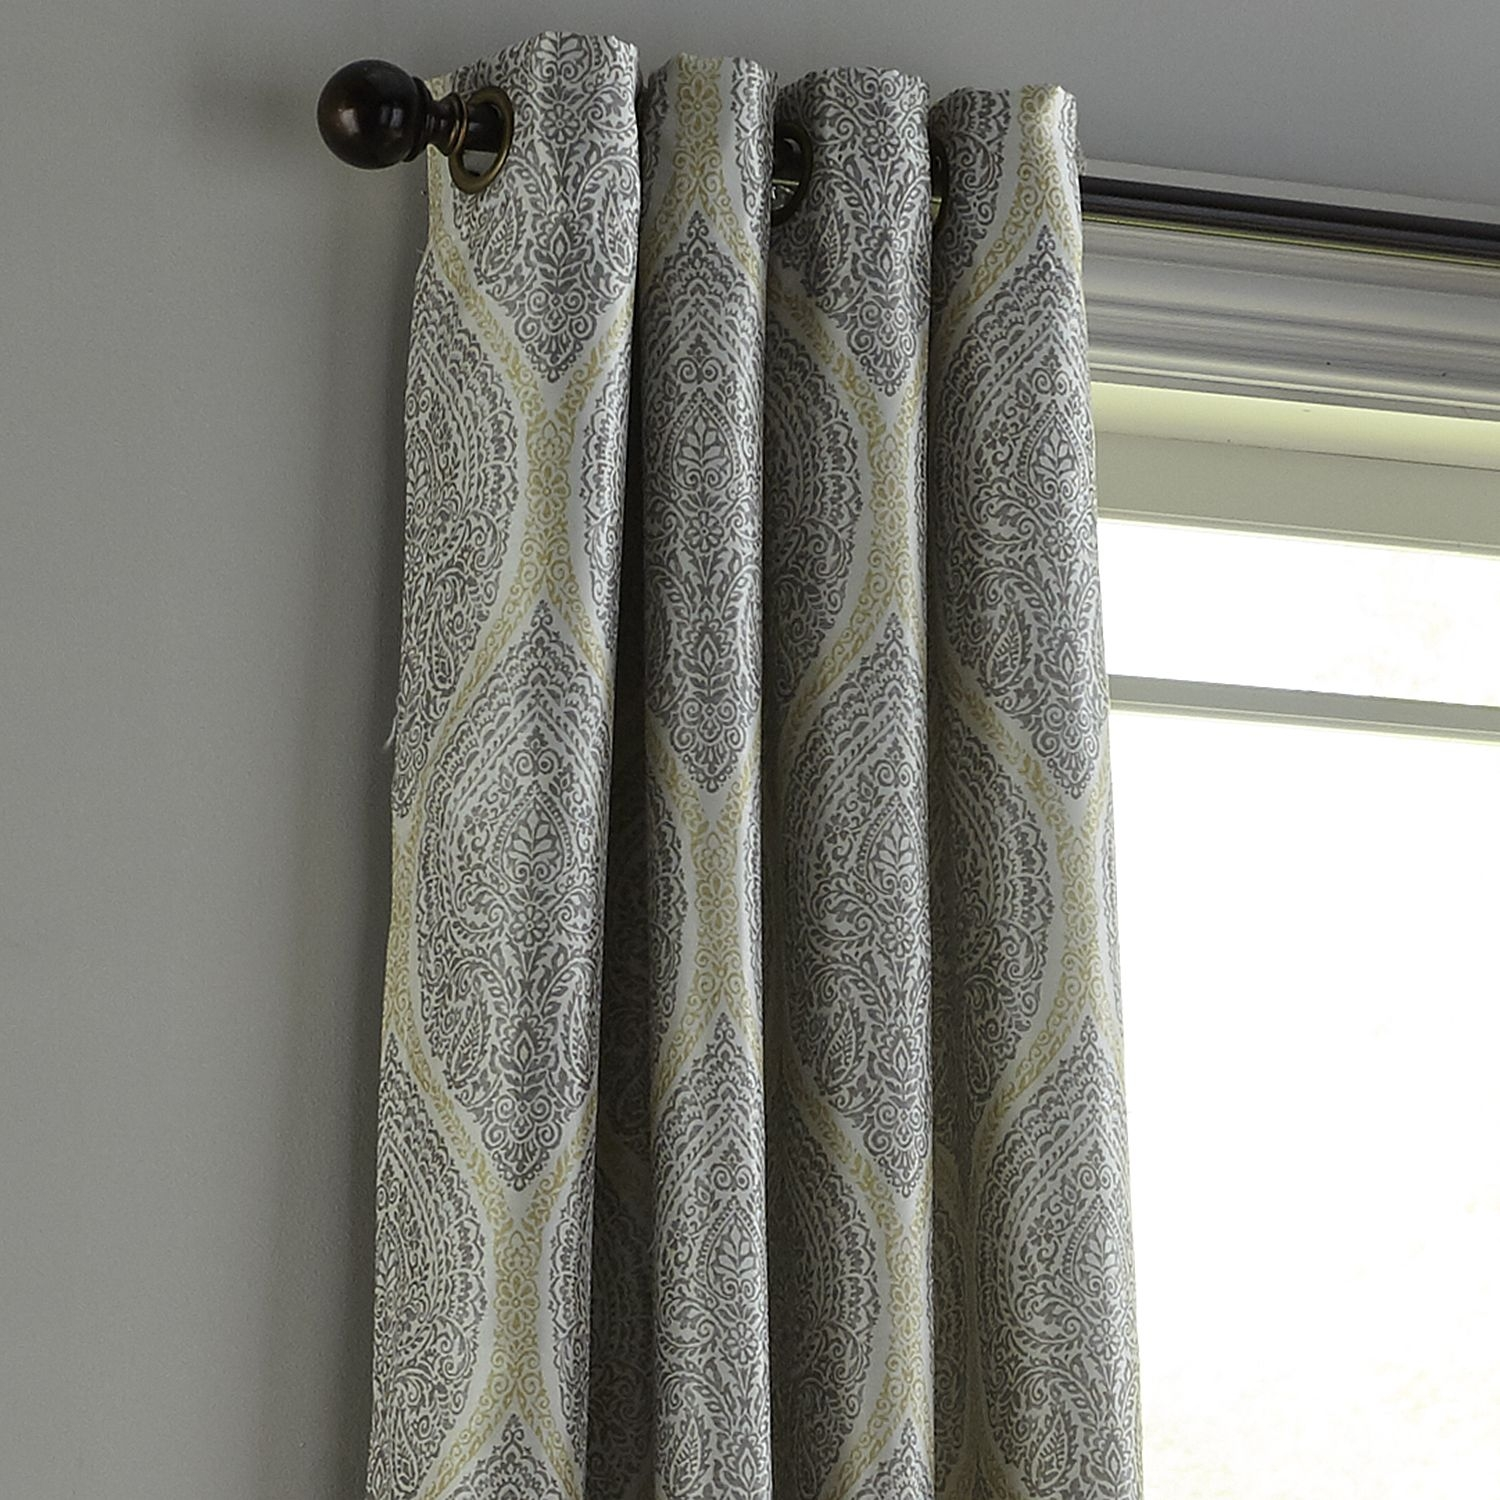 Decorating Curtains 108 Inch Drop Drapes 108 108 Blackout For 100 Inch Drop Curtains (Image 4 of 15)